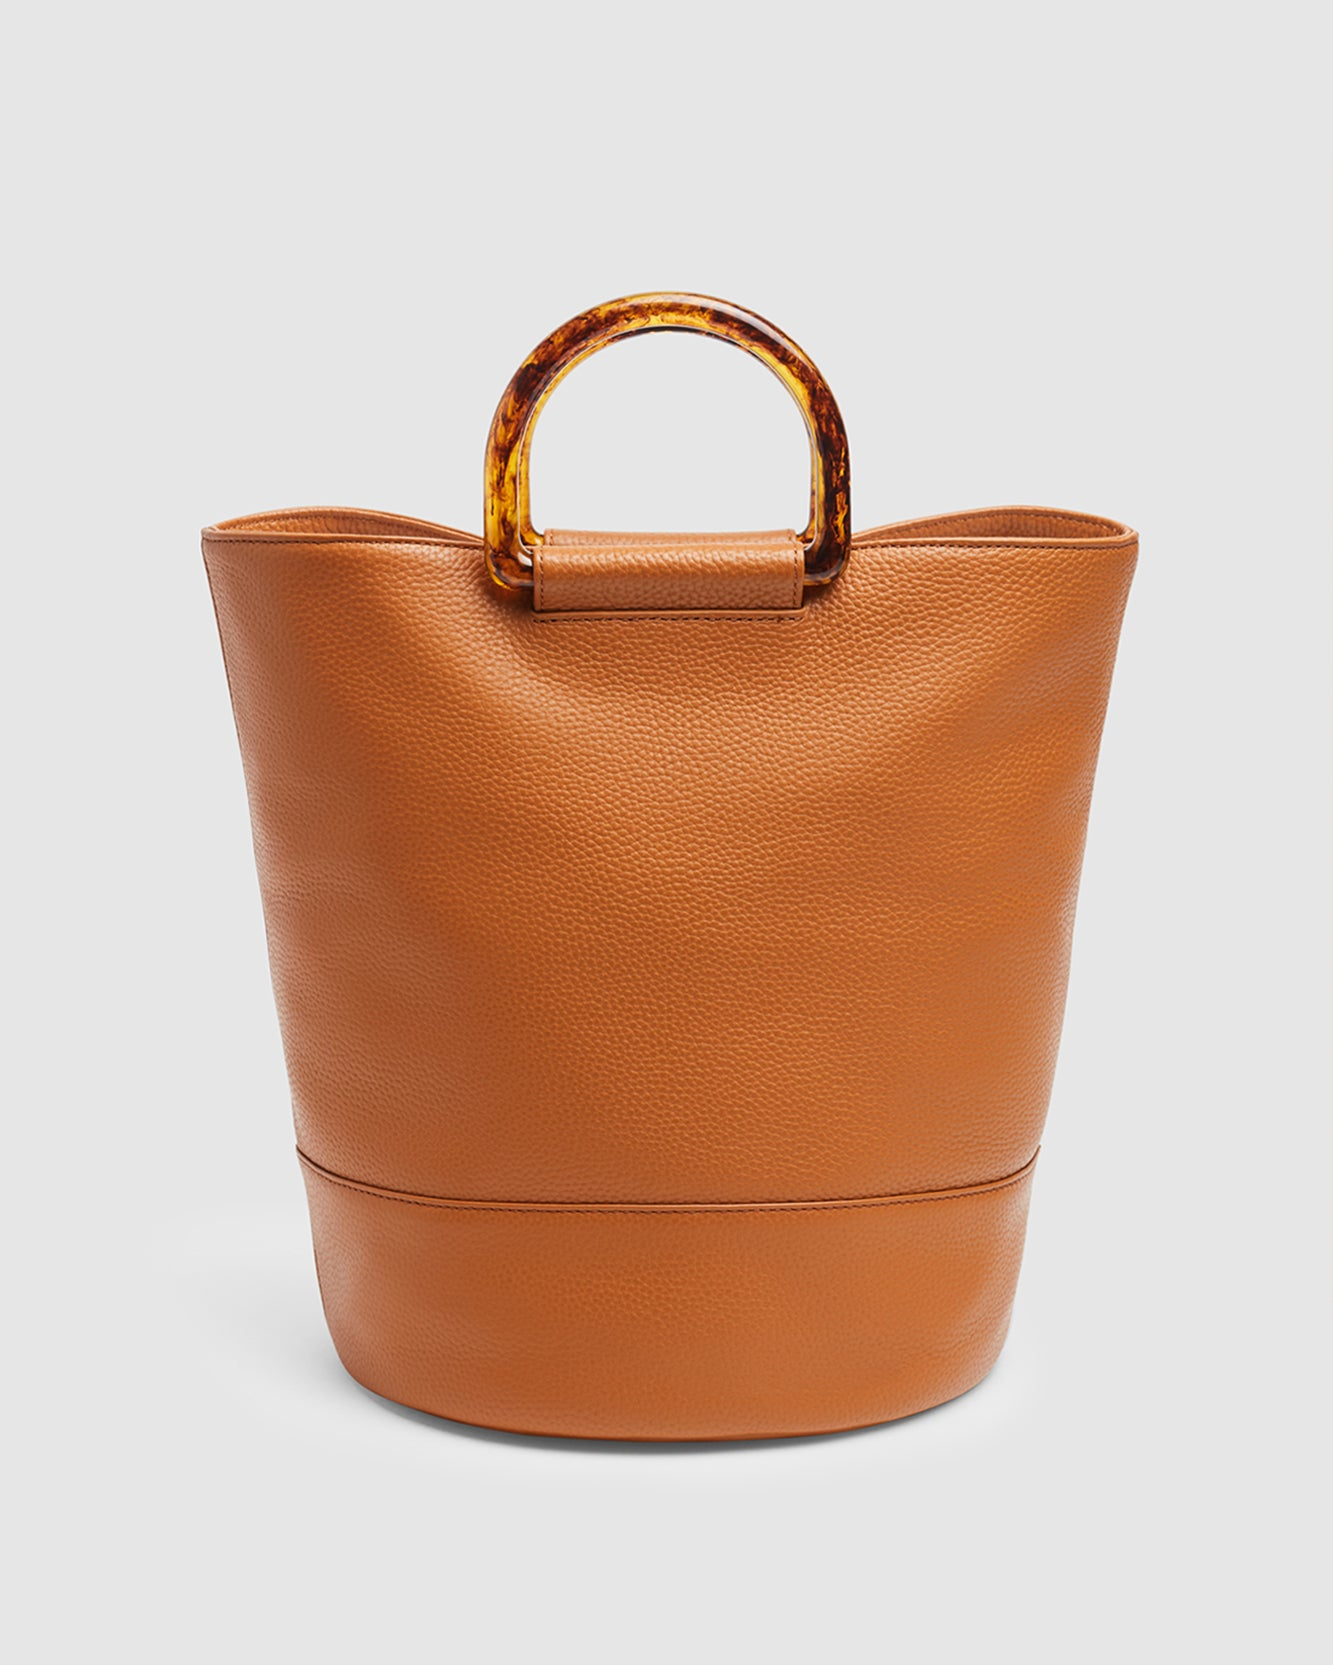 Image of Ring Tote in Camel